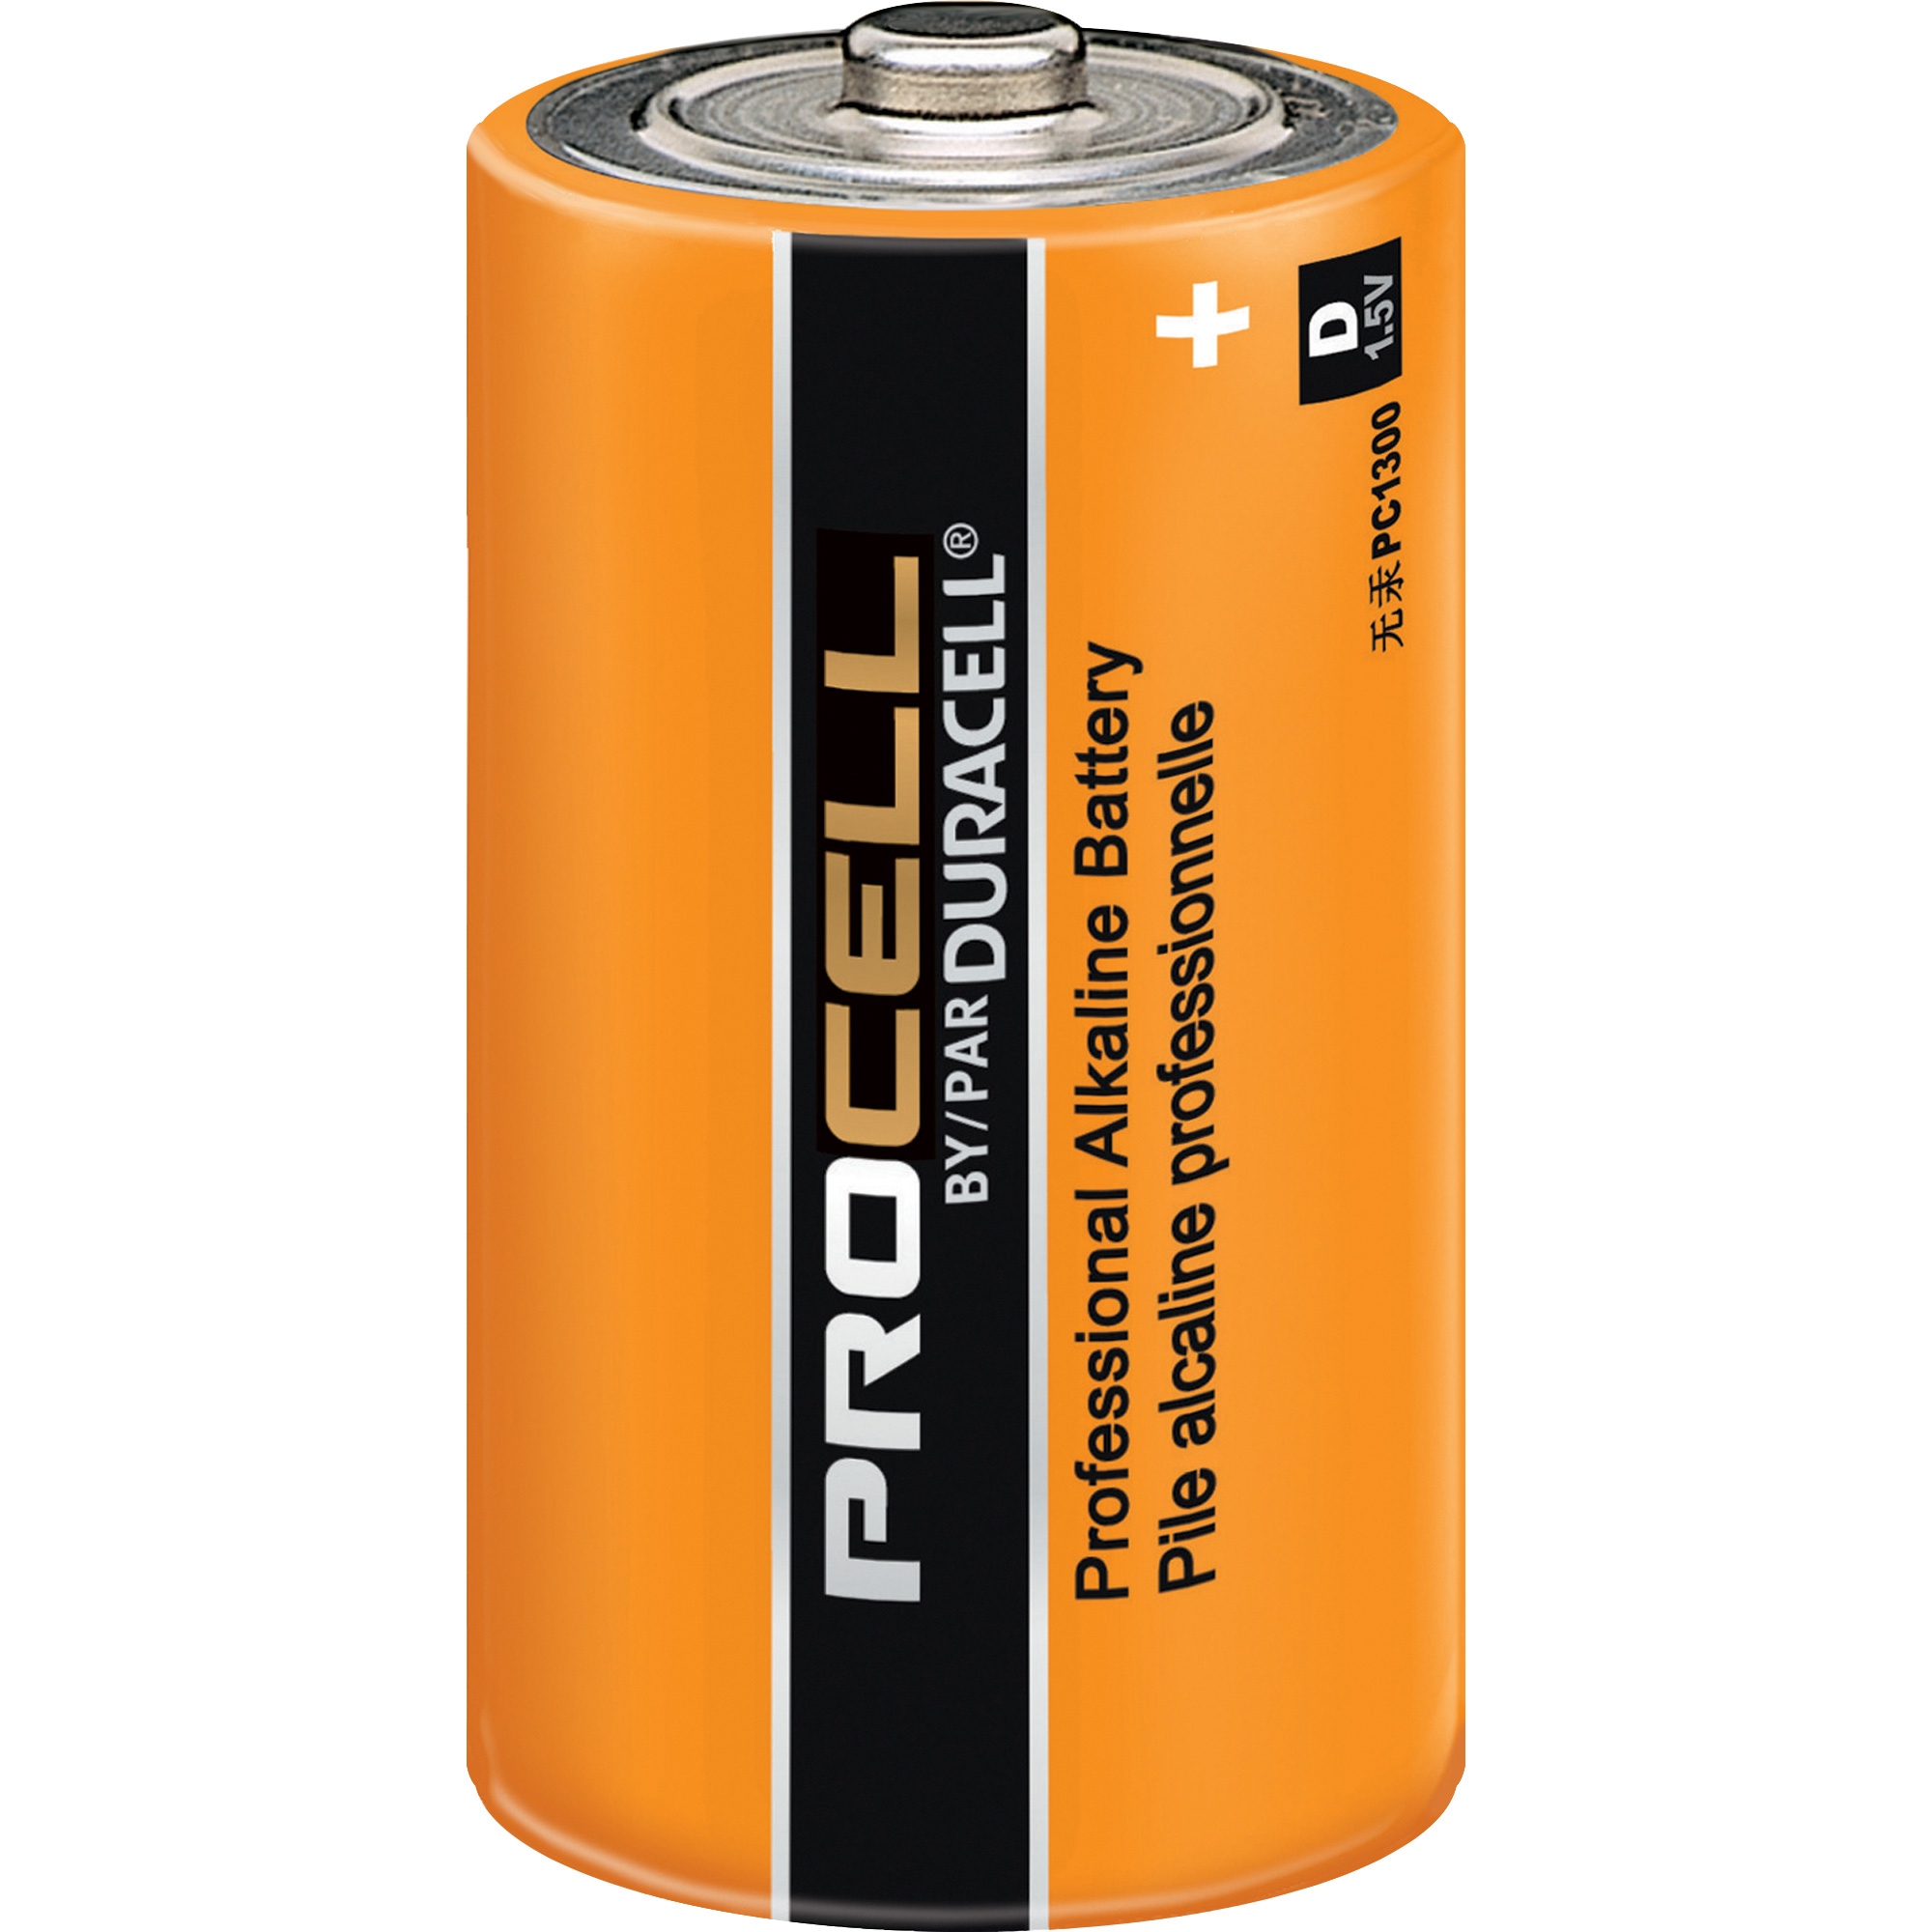 Duracell PC1300 Duracell Alkaline D PC1300 Single